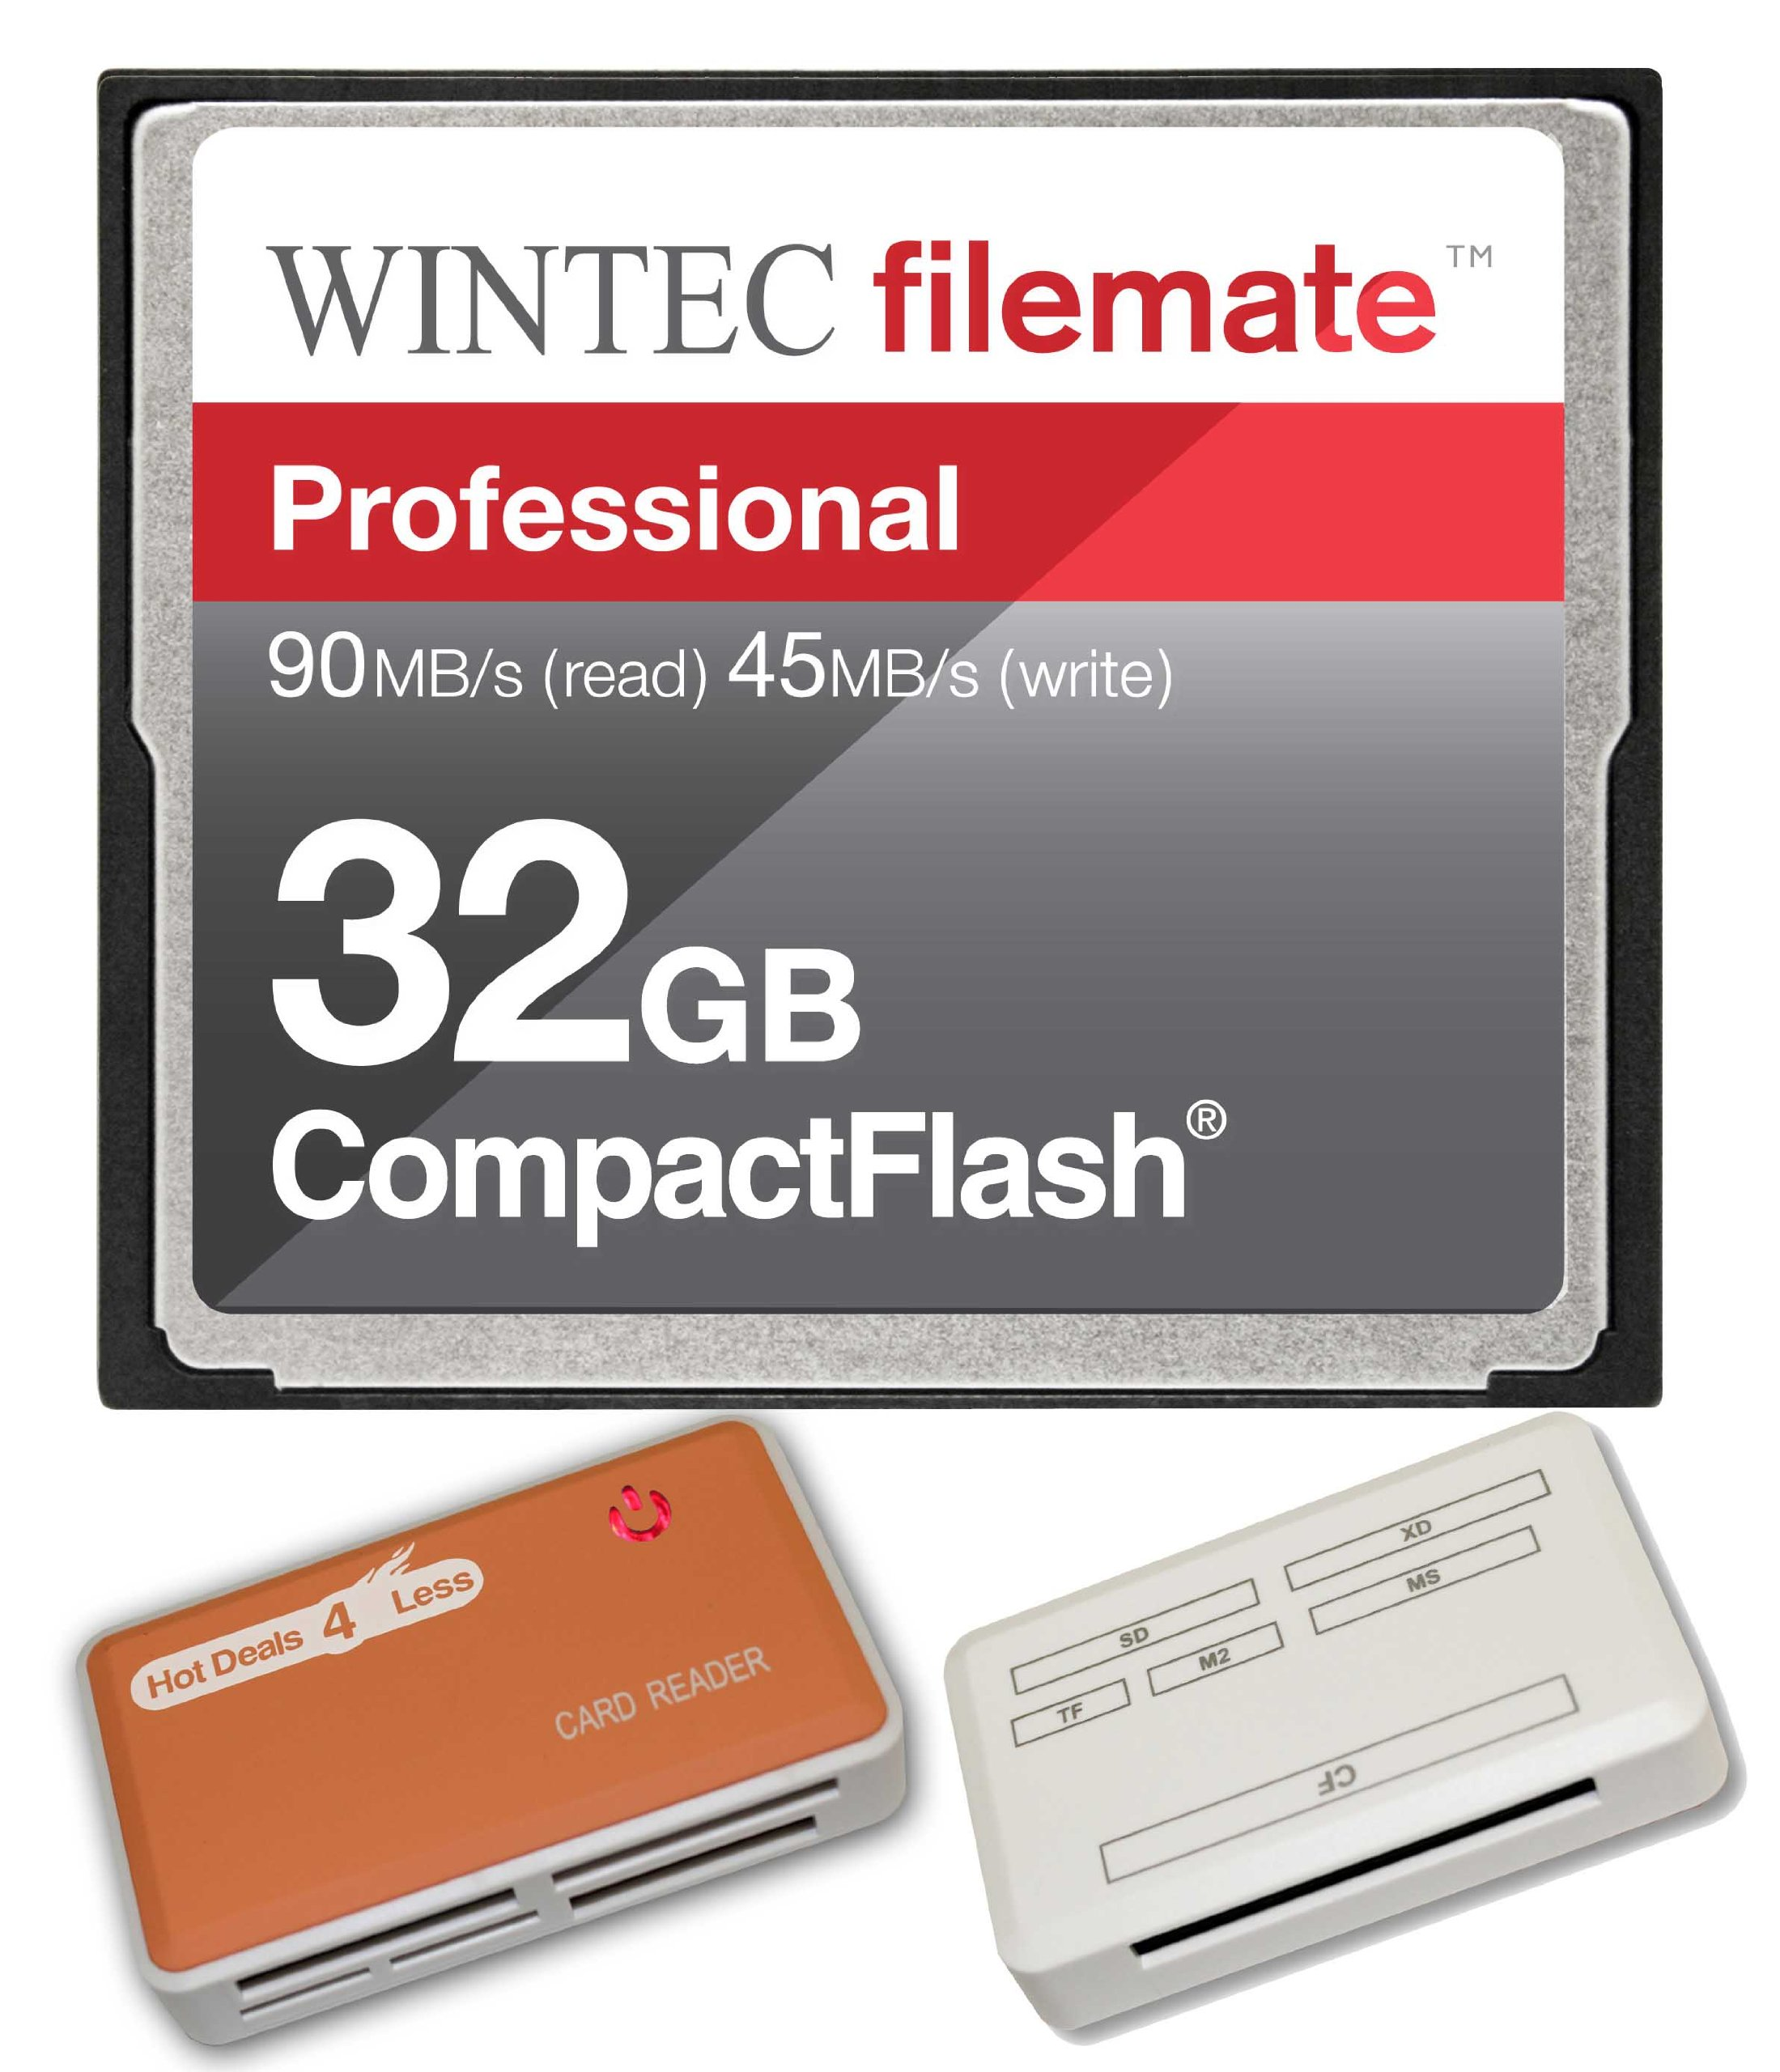 32GB Professional CF Memory Card for Canon EOS 5D Mark II EOS 7D Cameras. Blazing Fast 600X Card with all in one Hot Deals 4 Less Card Reader and Life Time Warranty. by WintecIndustries